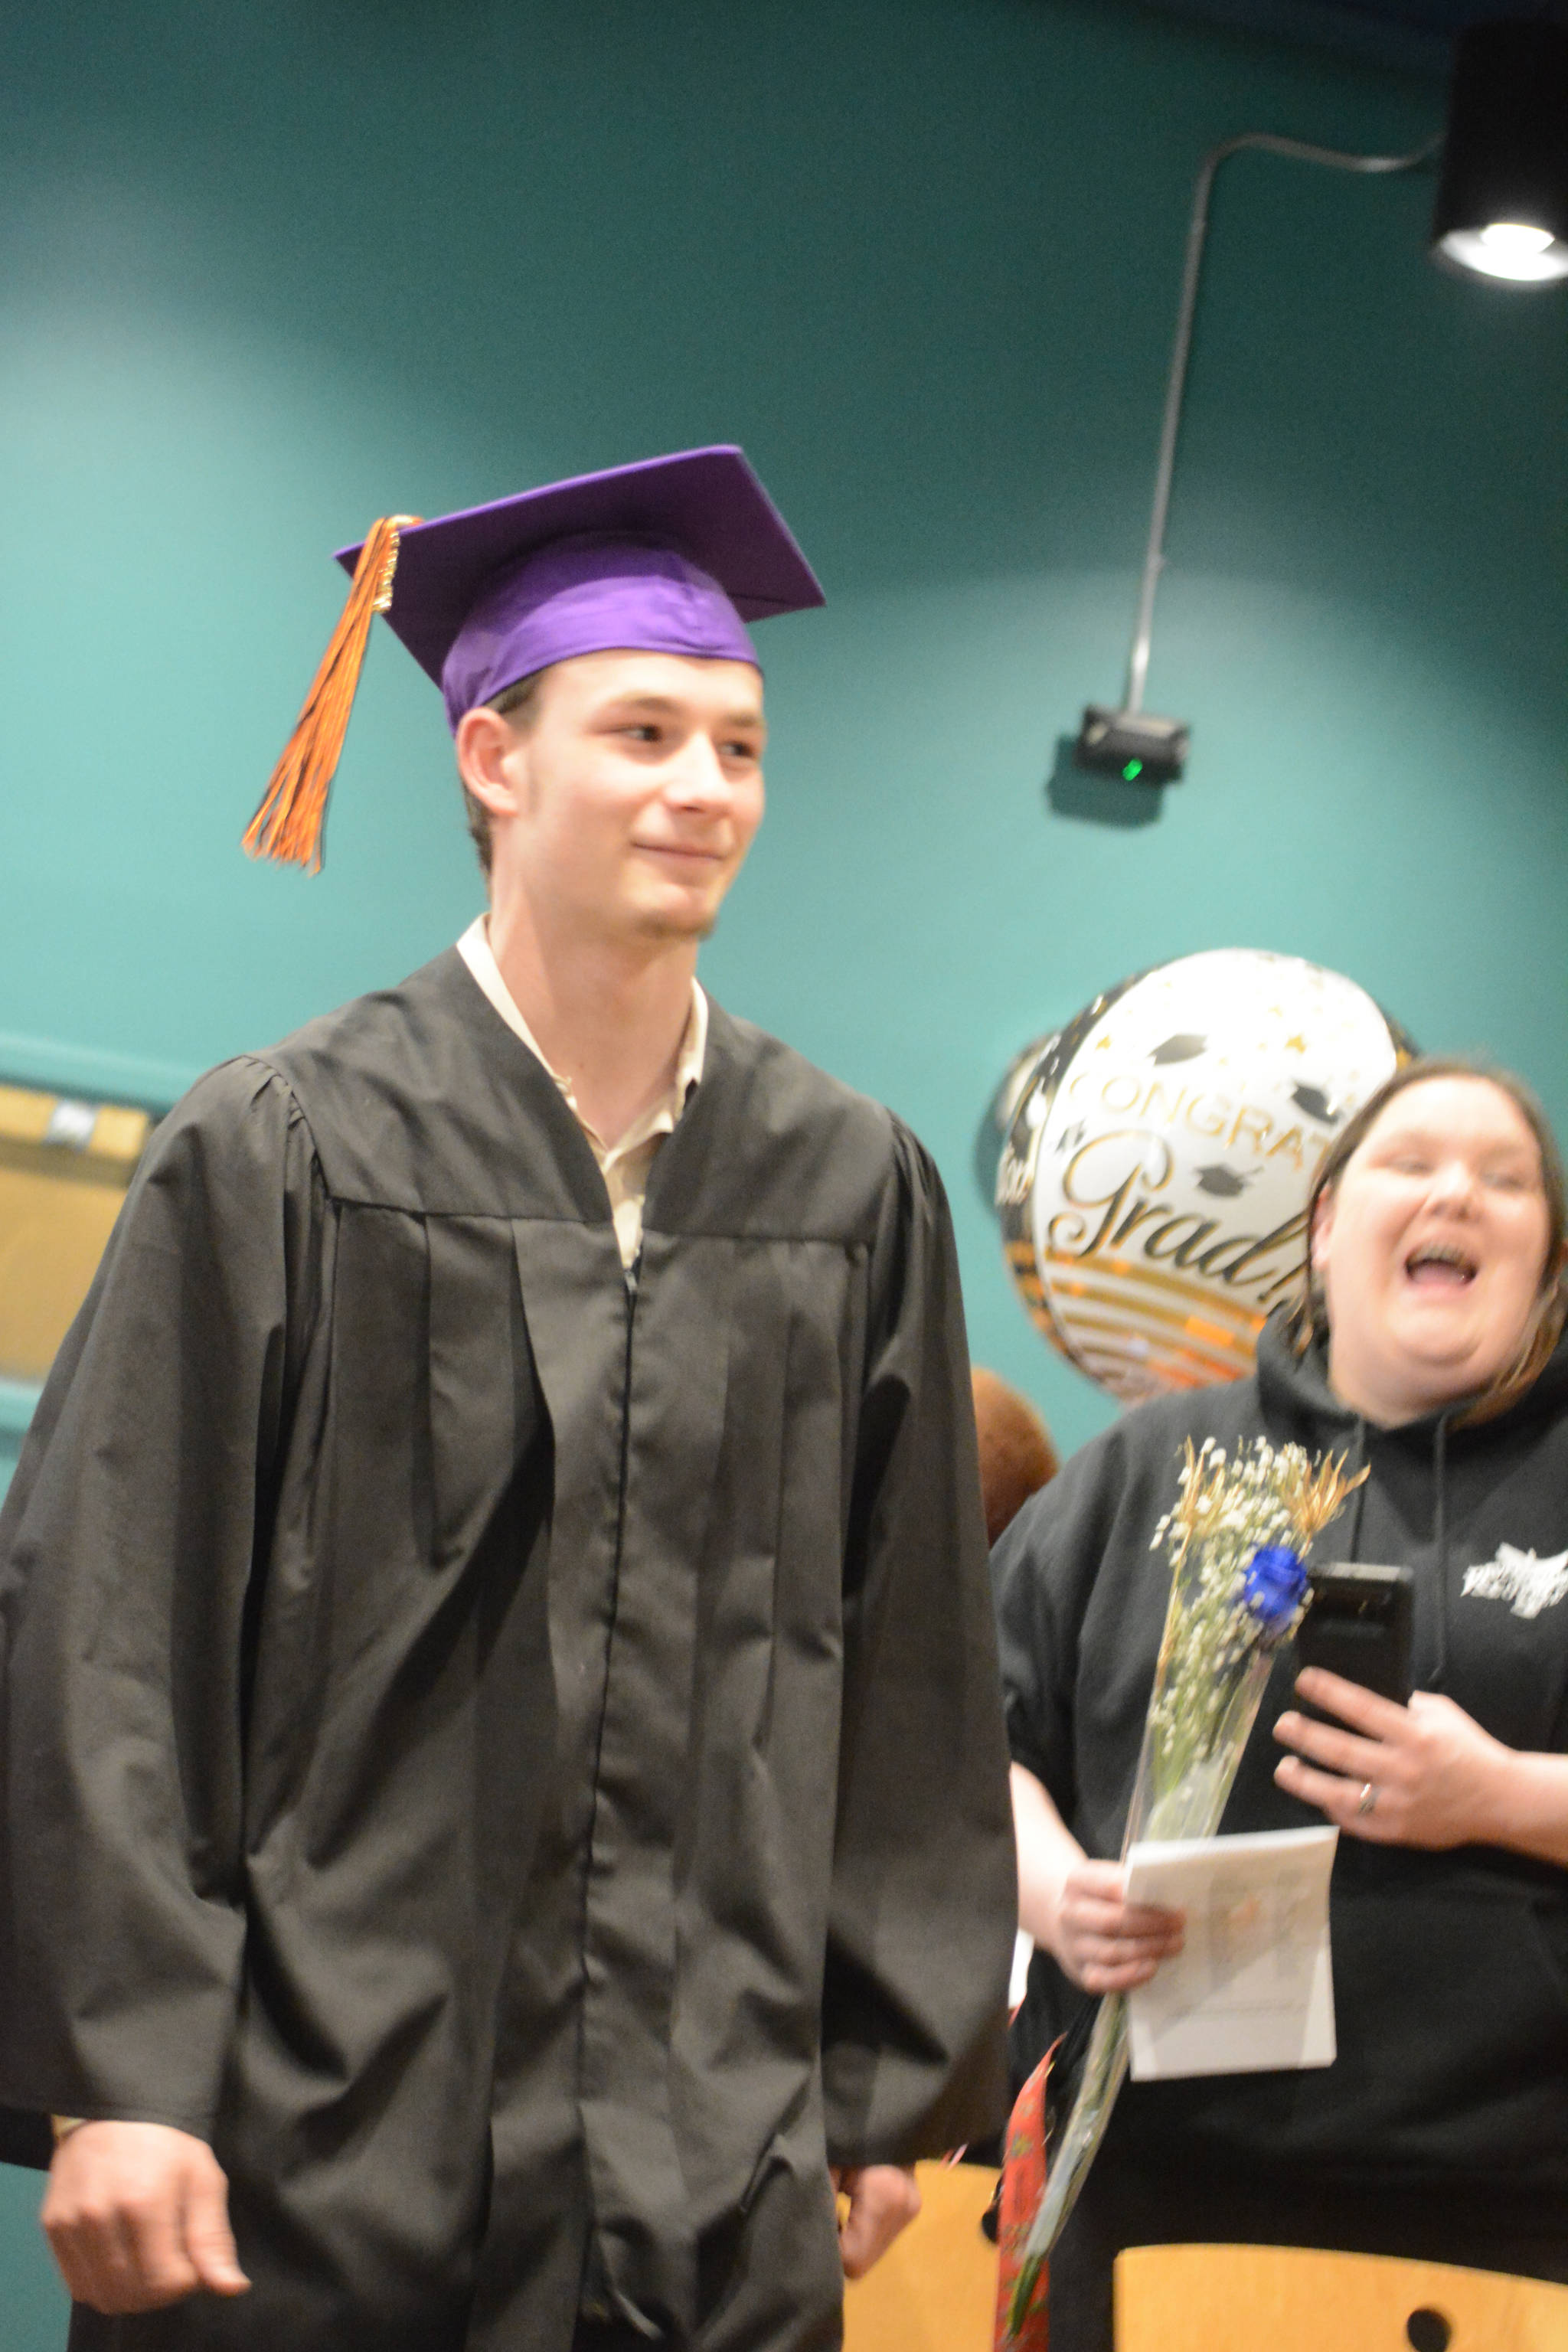 Flex High School graduate Matthew Prescott walks during the processional. Nine students graduated from Flex on Tuesday night, May 22, 2018, at the Alaska Islands and Ocean Visitor Center auditorium, Homer, Alaska. (Photo by Michael Armstrong / Homer News)